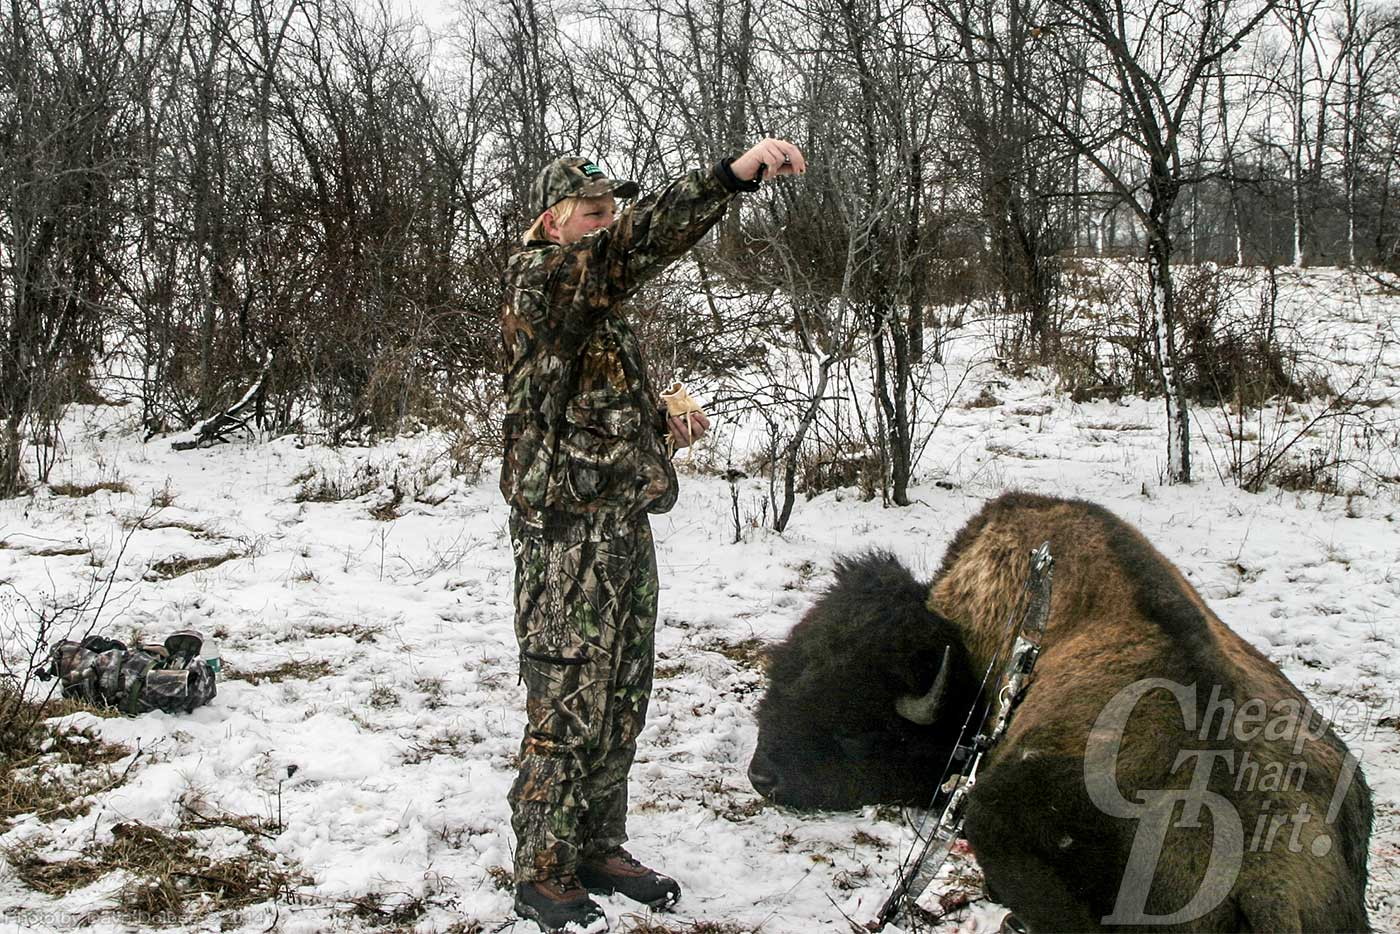 Hunter performing a tobacco ceremony over a downed bison.